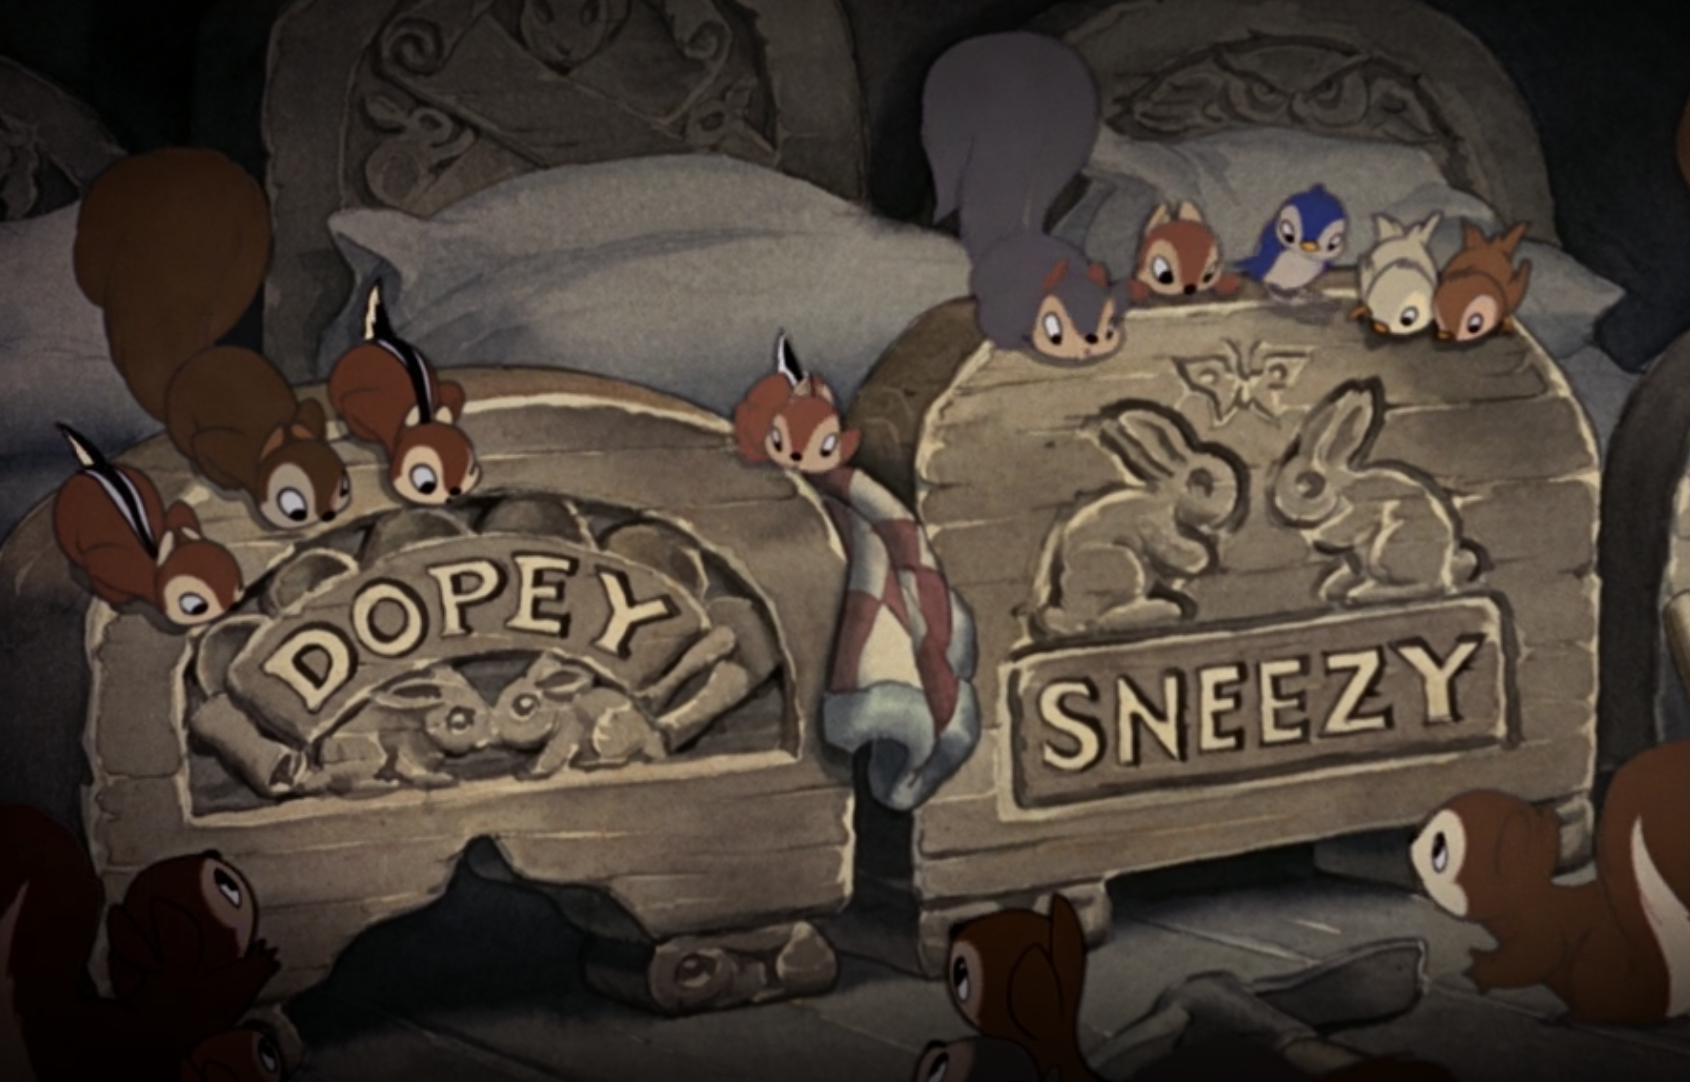 beds for Dopey and Sneezy